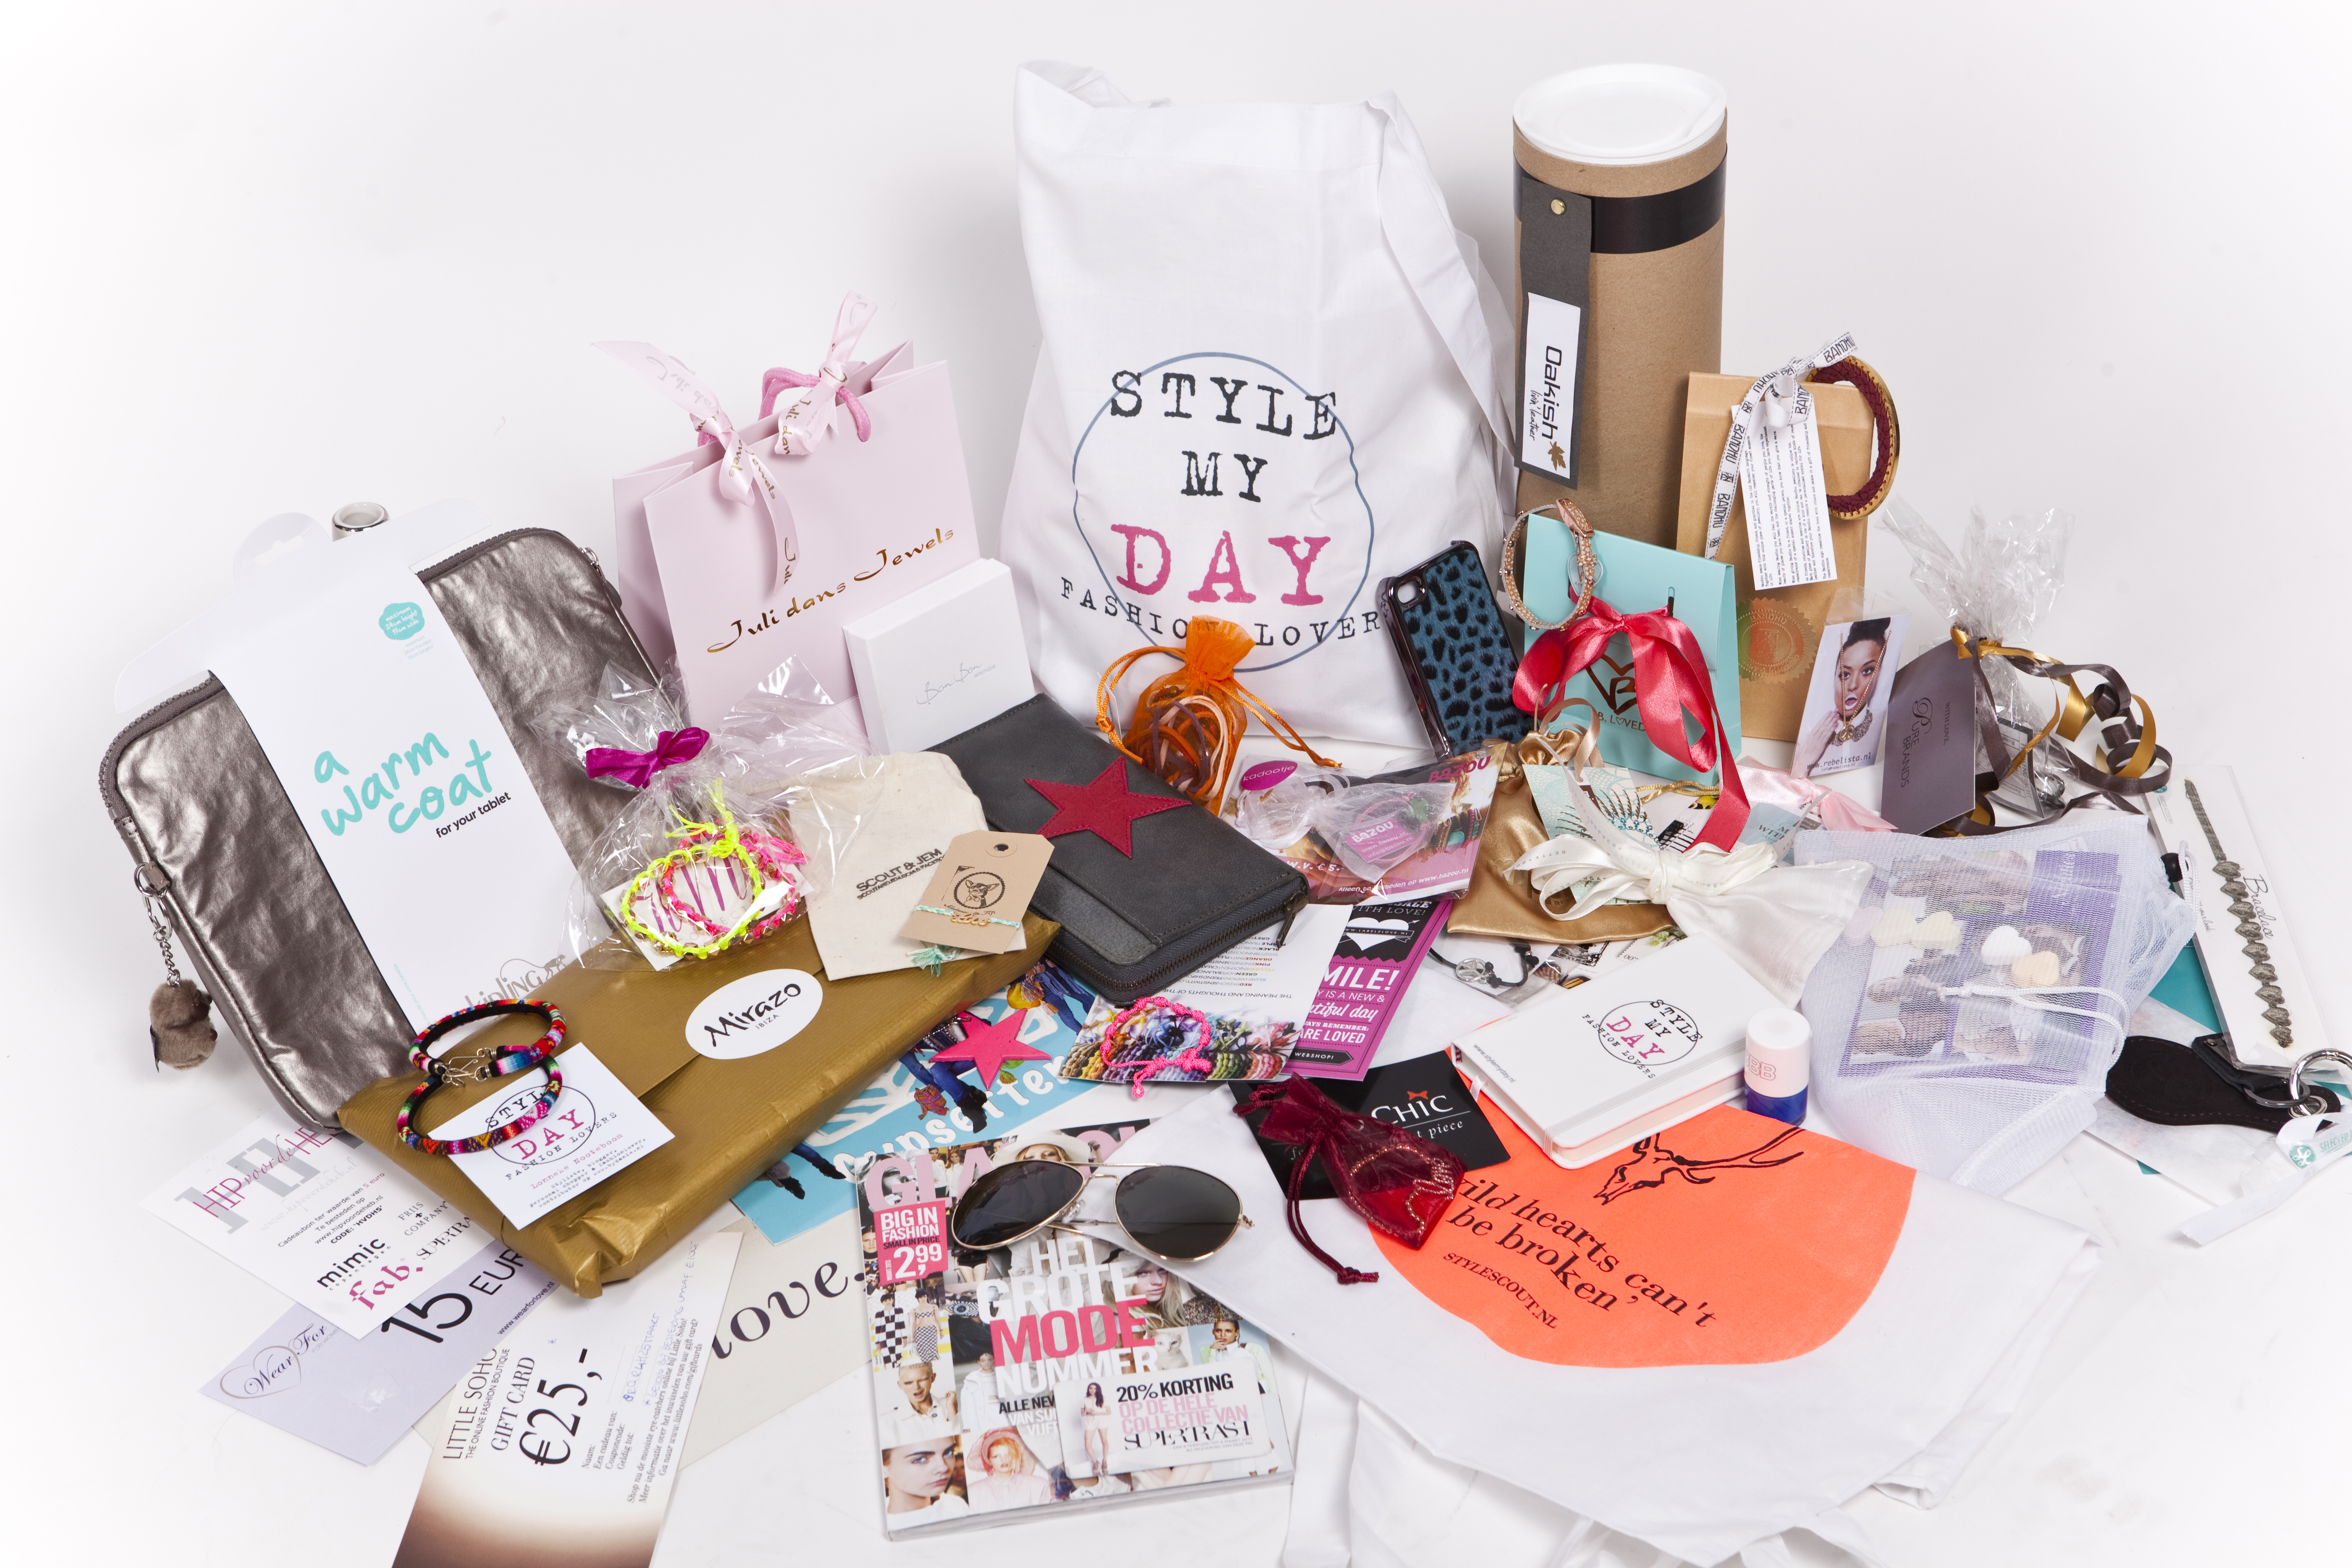 Curious what's in the Style My Day goodie bag?